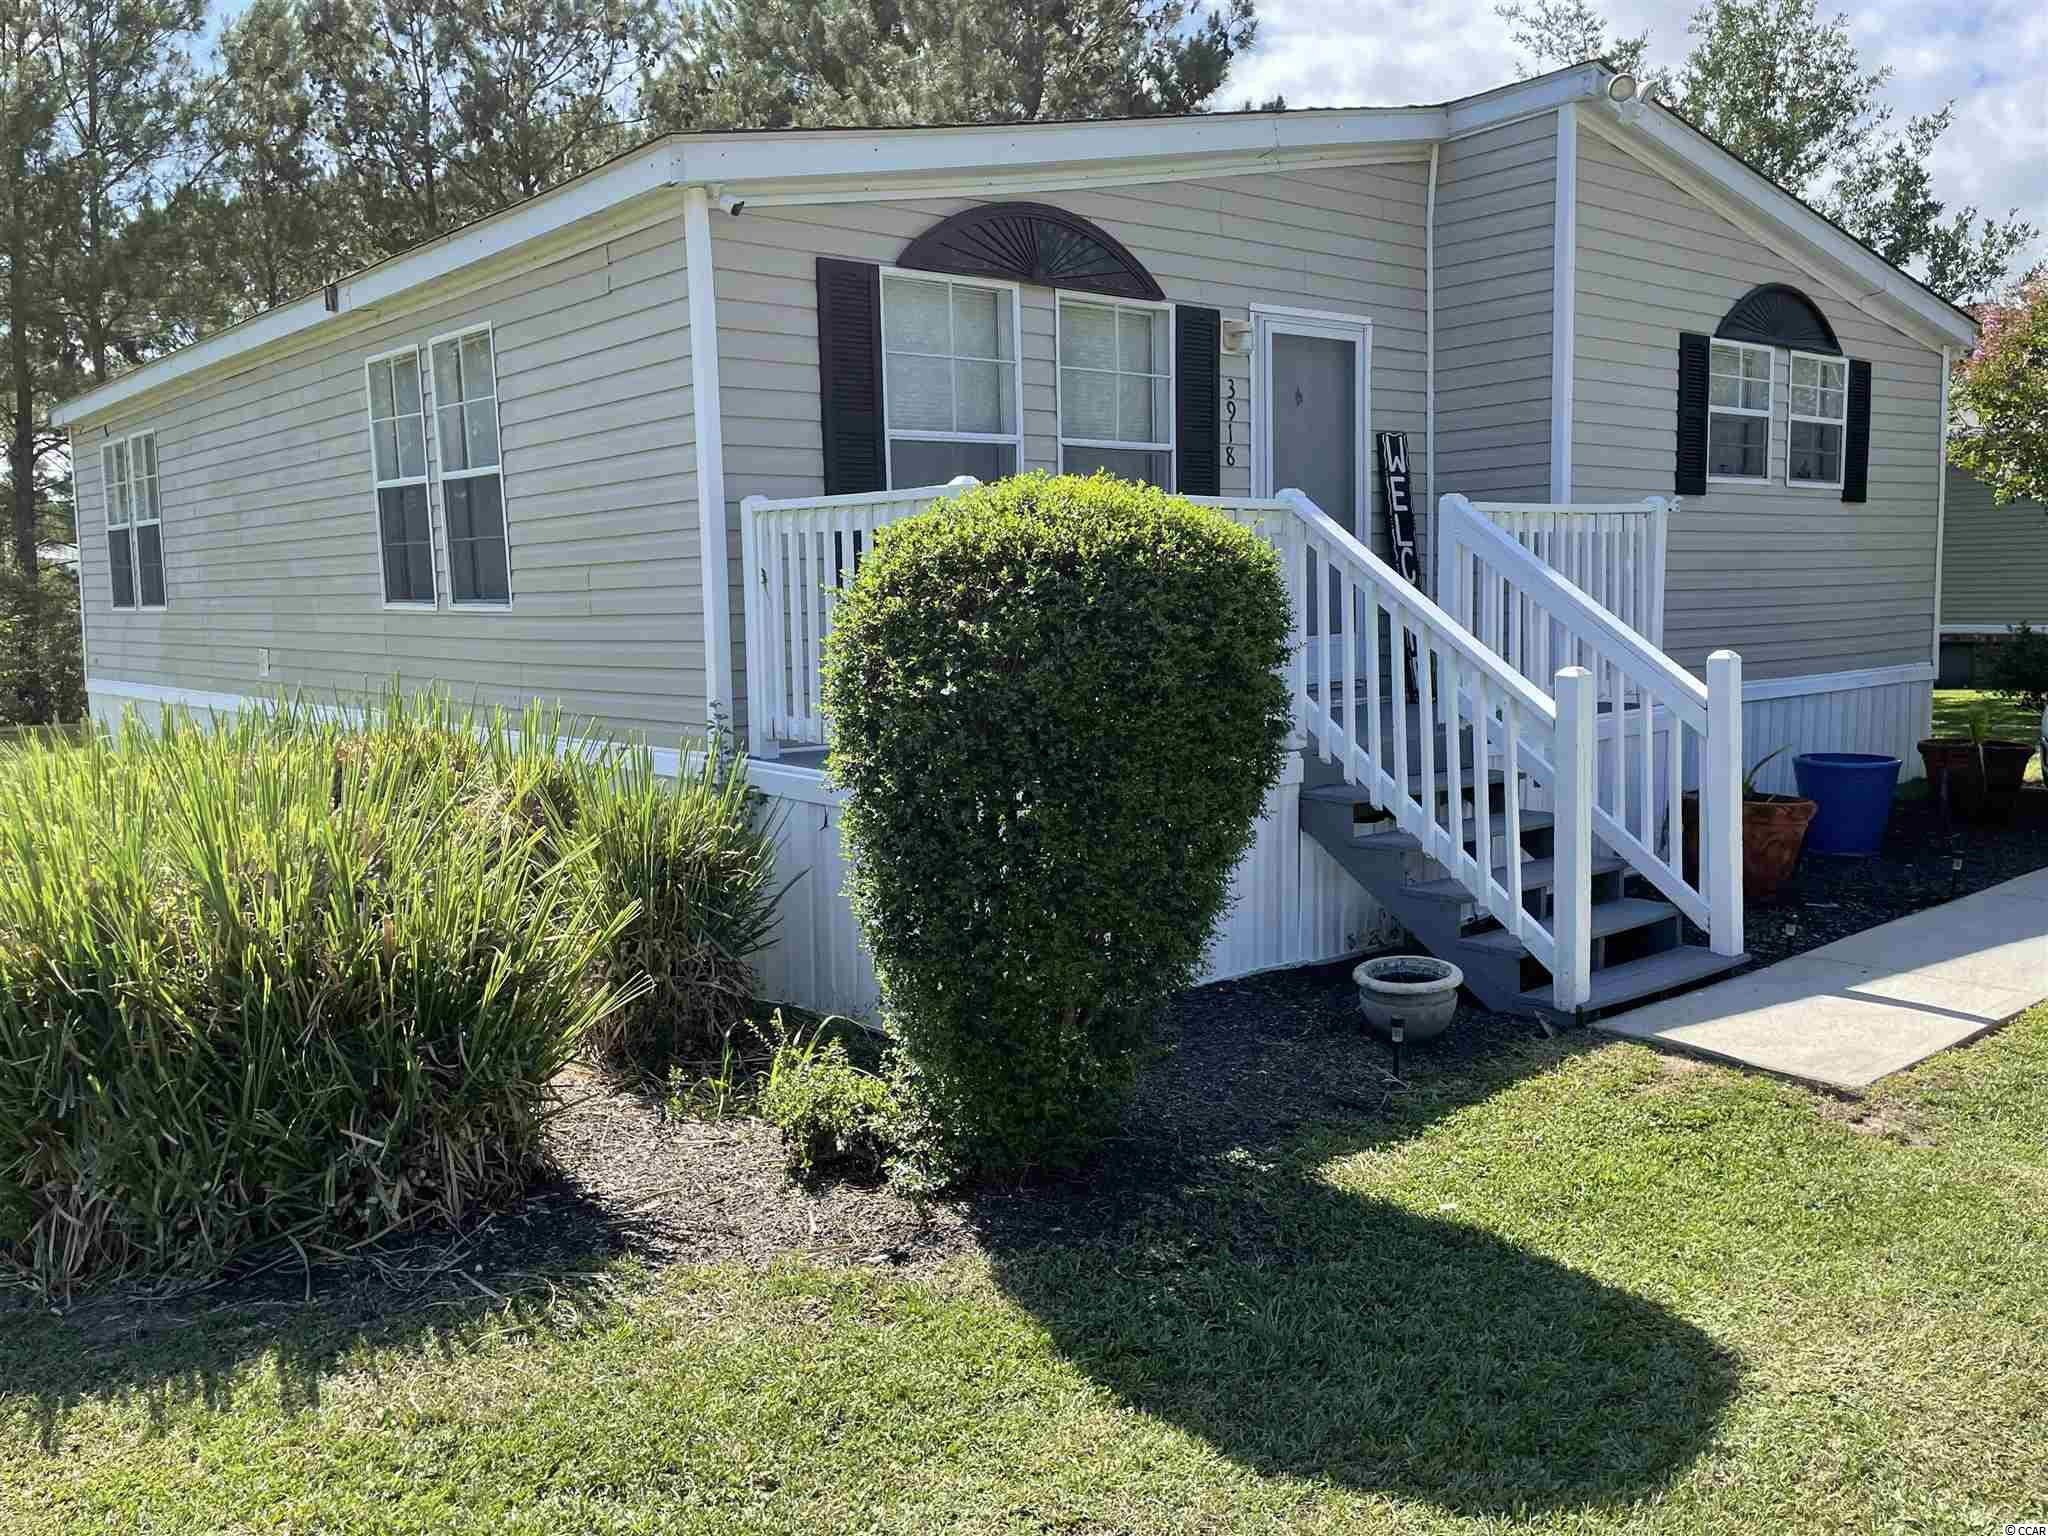 Beautiful 3 bedroom 2 bathroom home on a pond within a quiet neighborhood. Close to Conway and all it has to offer and only 25 min to the beach! Come check this home out!